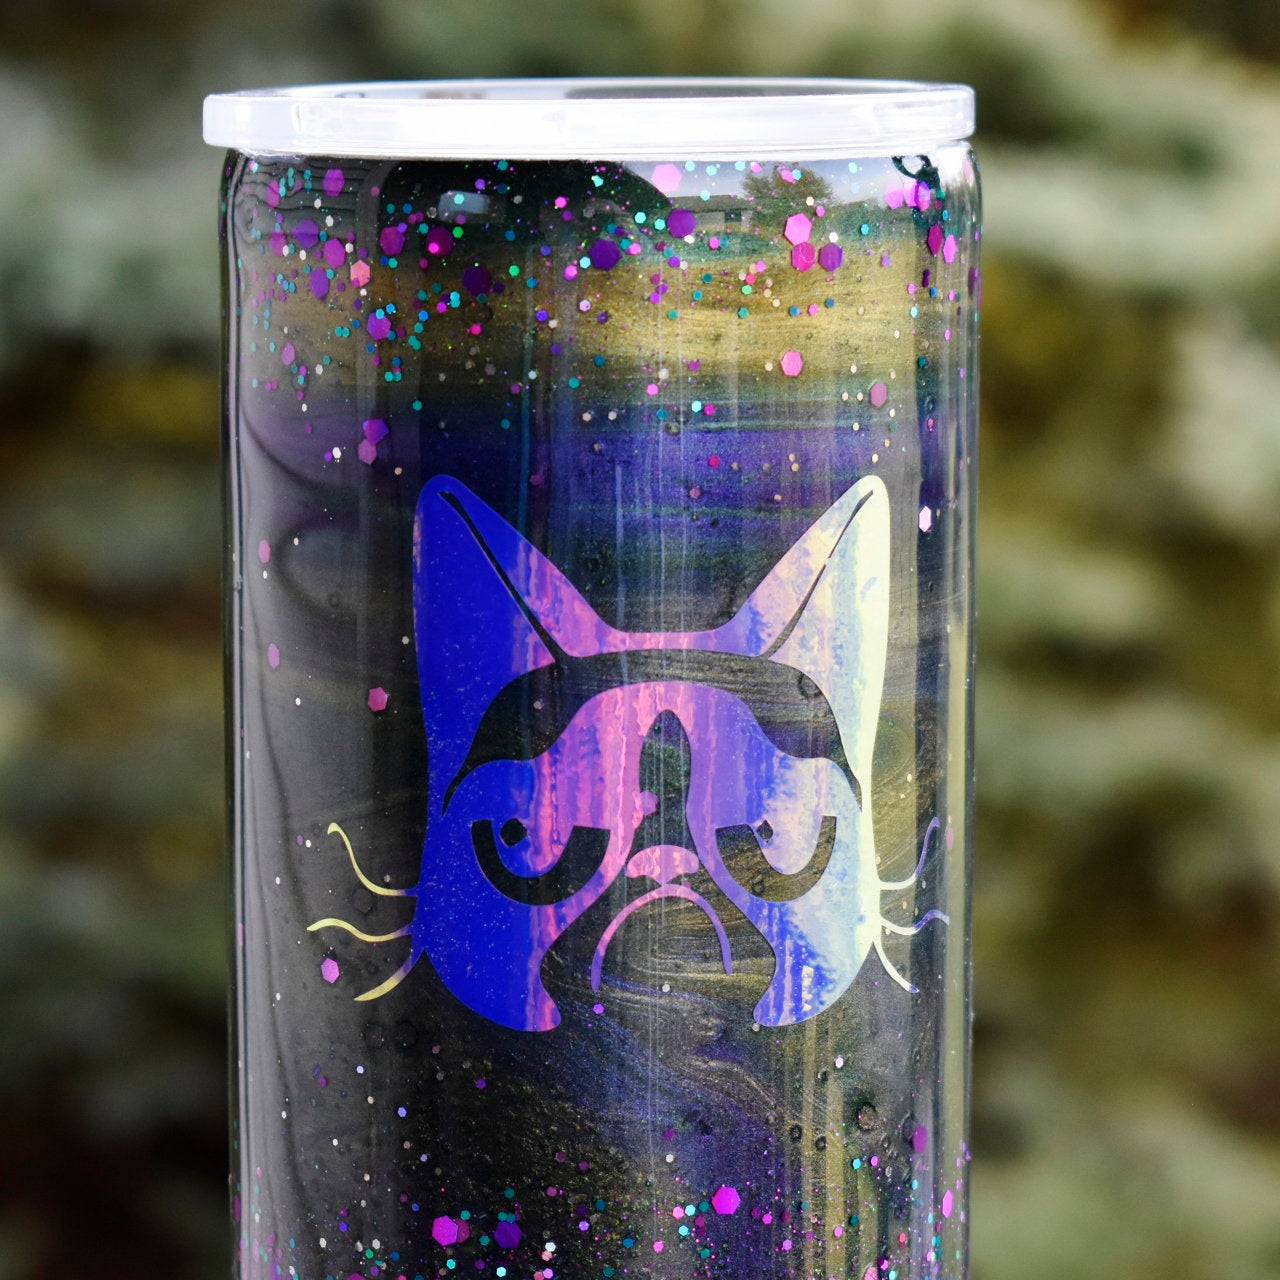 RTS Purple Grumpy Cat 22 oz Tumbler Cups Gift for Her Girlfriend Birthday Stainless Steel Glitter Tumbler